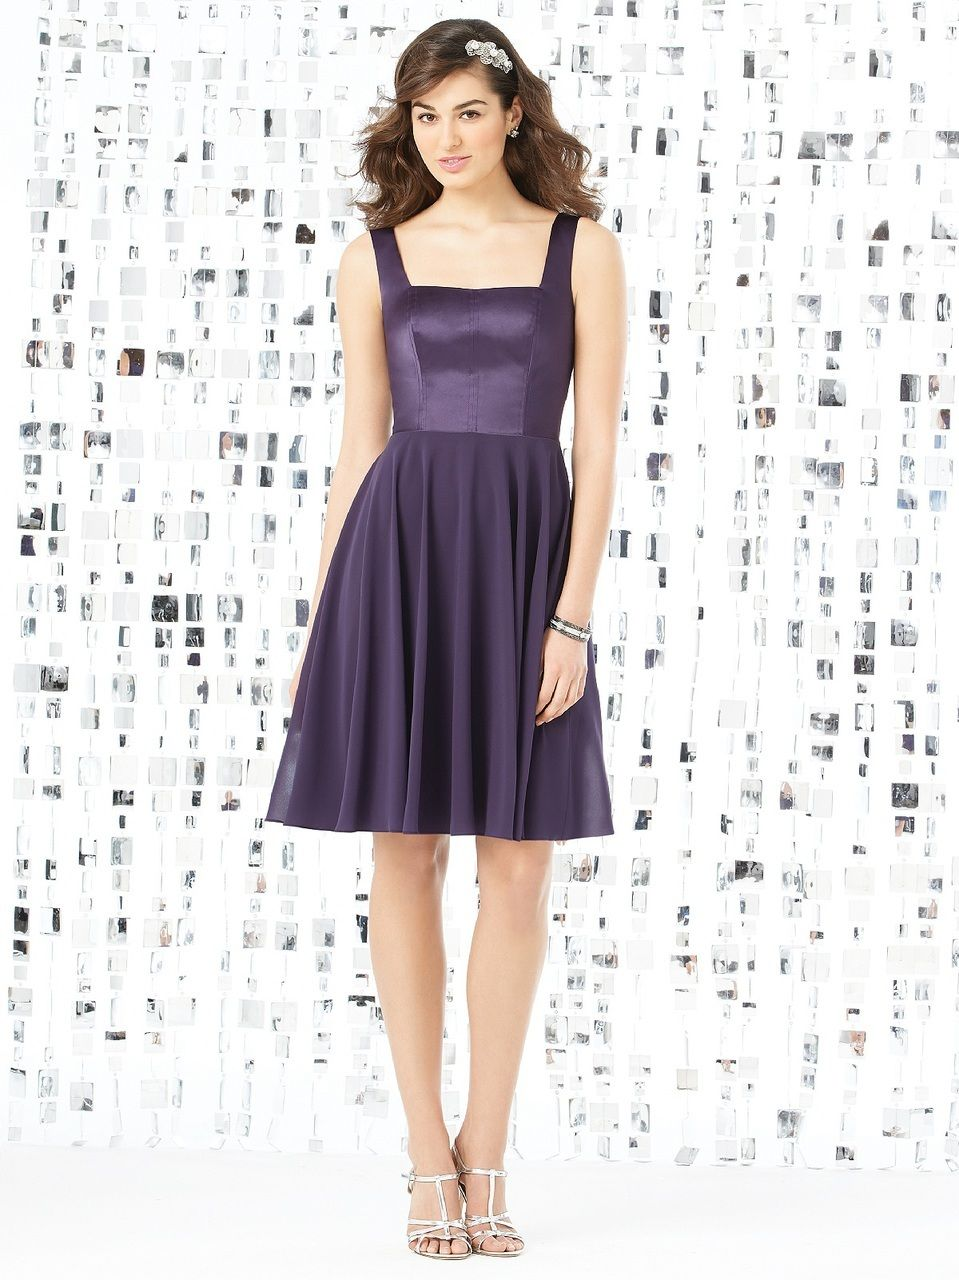 What to wear over a sleeveless dress to a wedding  Dessy Sample Clearance Sale NOW   SALE Special Occasion